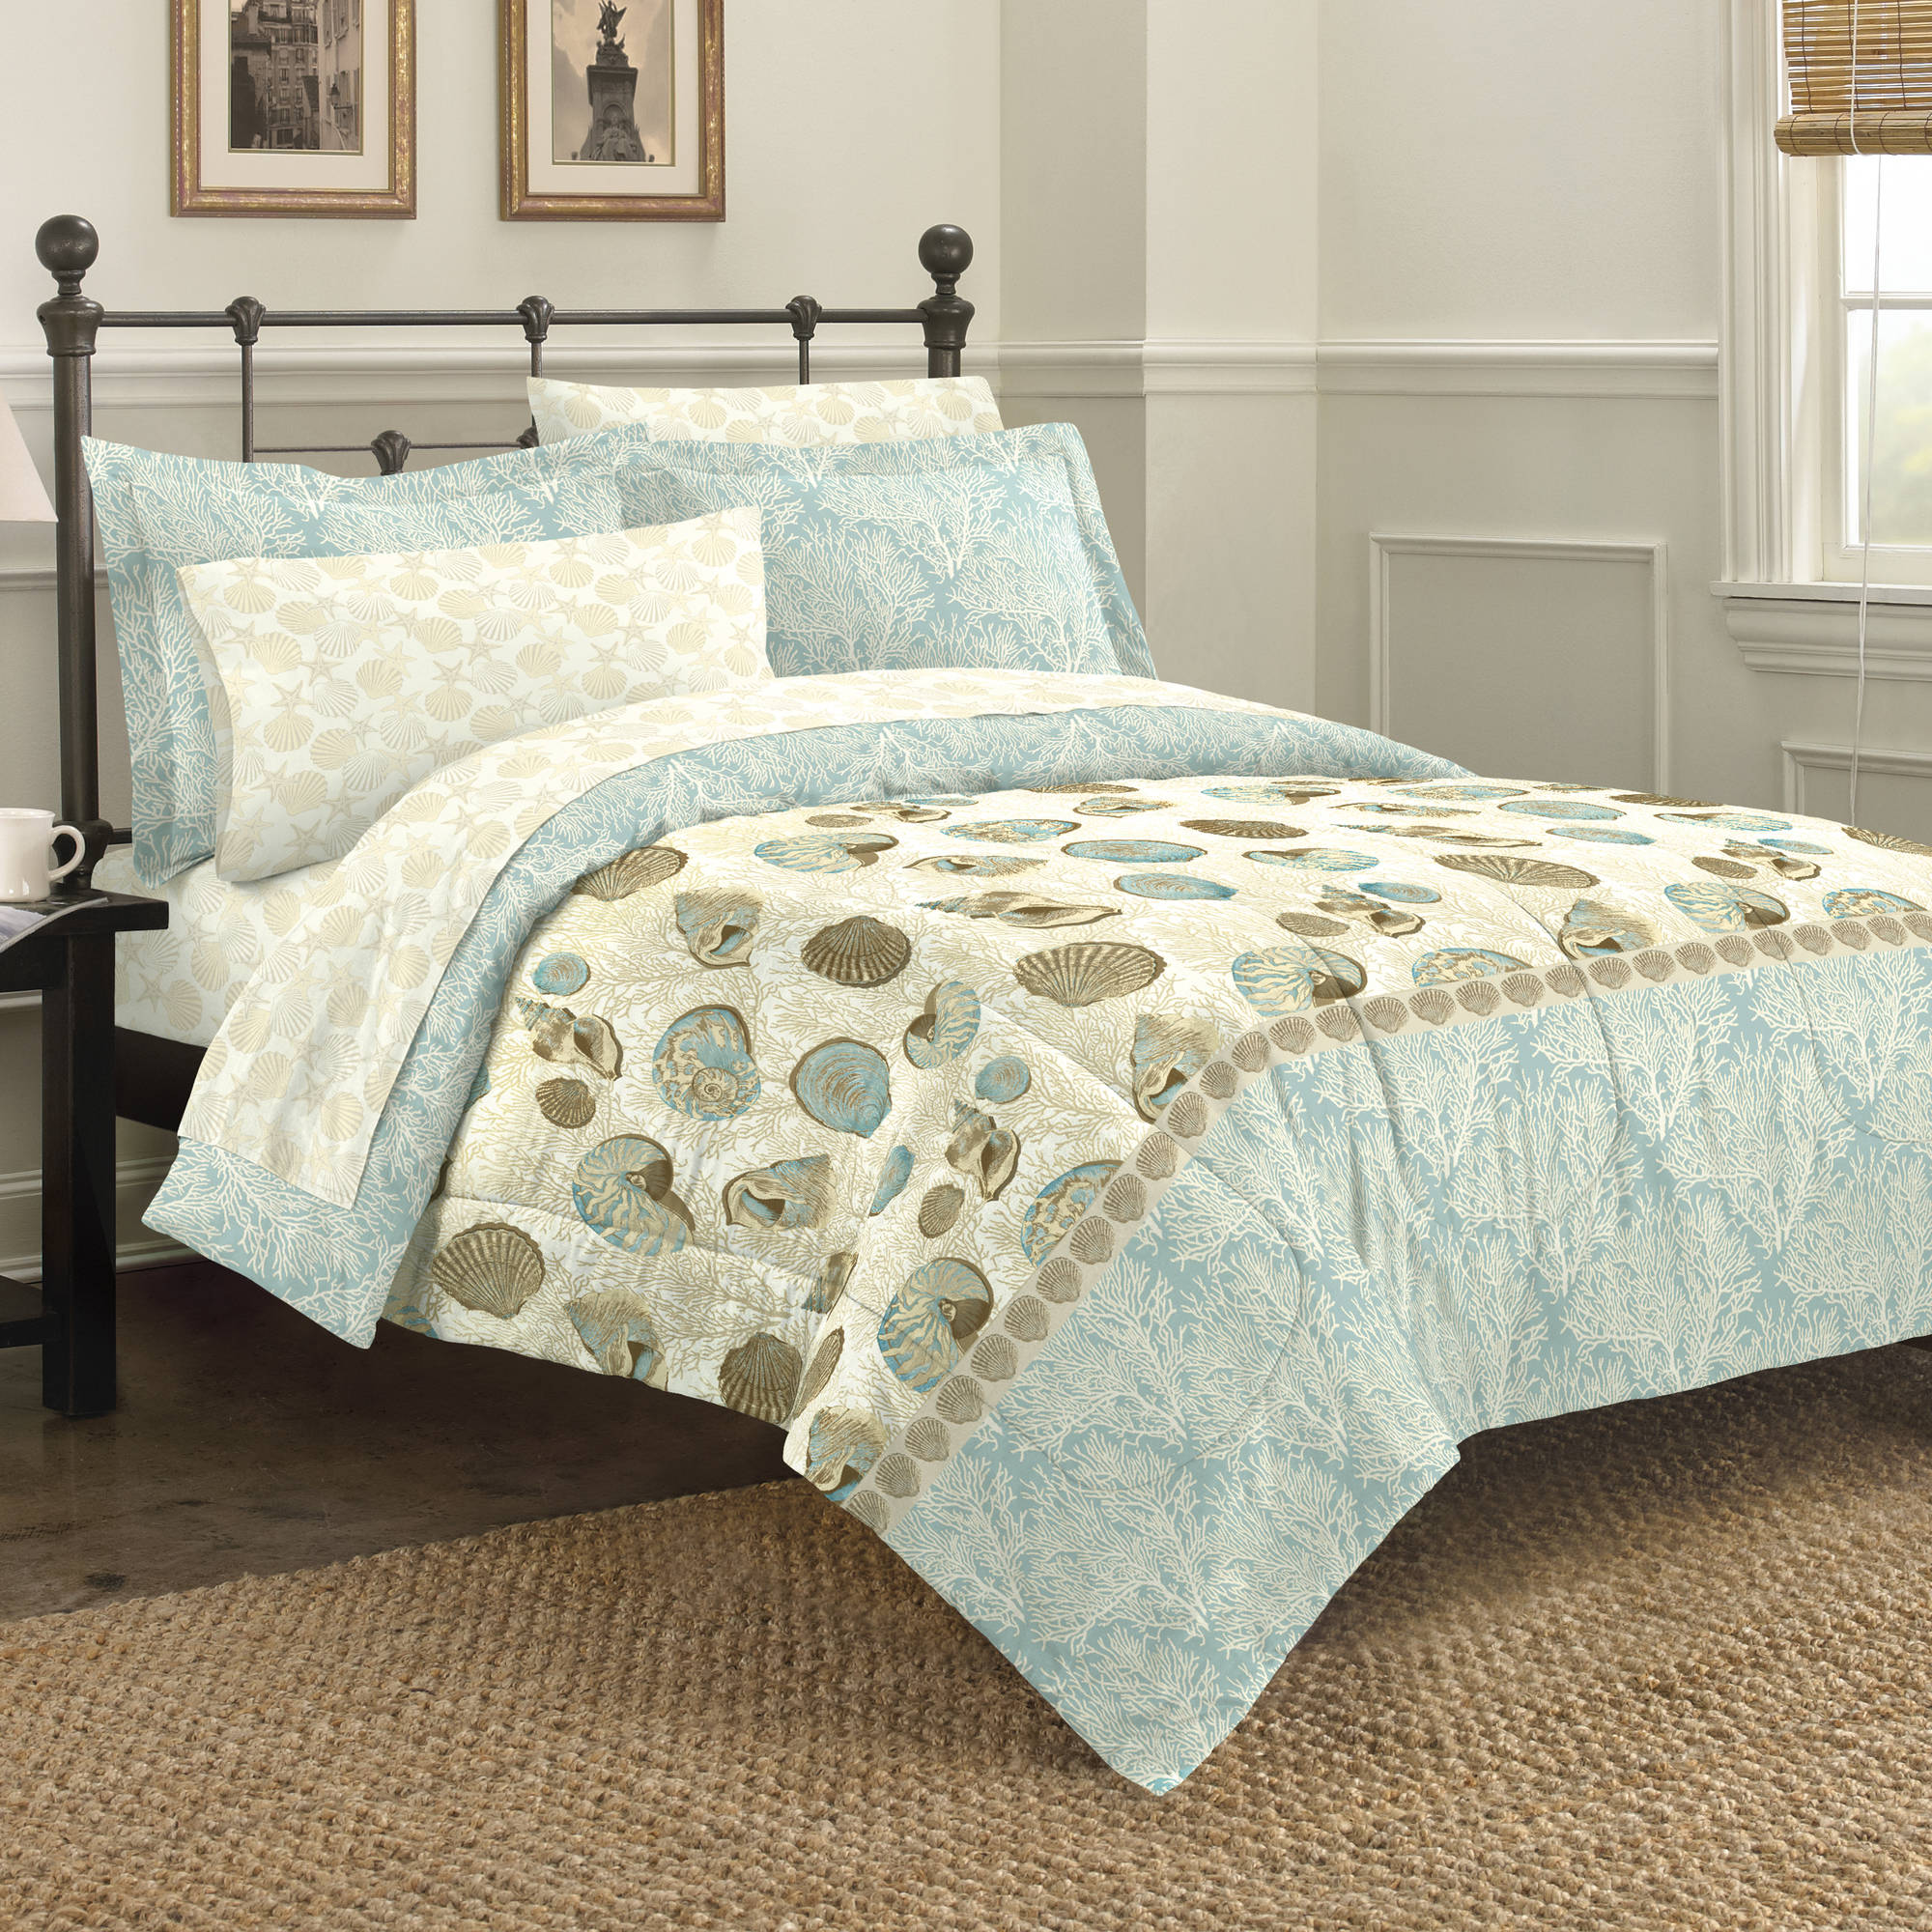 walmart amazon twin bed beach on and bedding comforter set curtains bedspreads sale quilt themed sets target